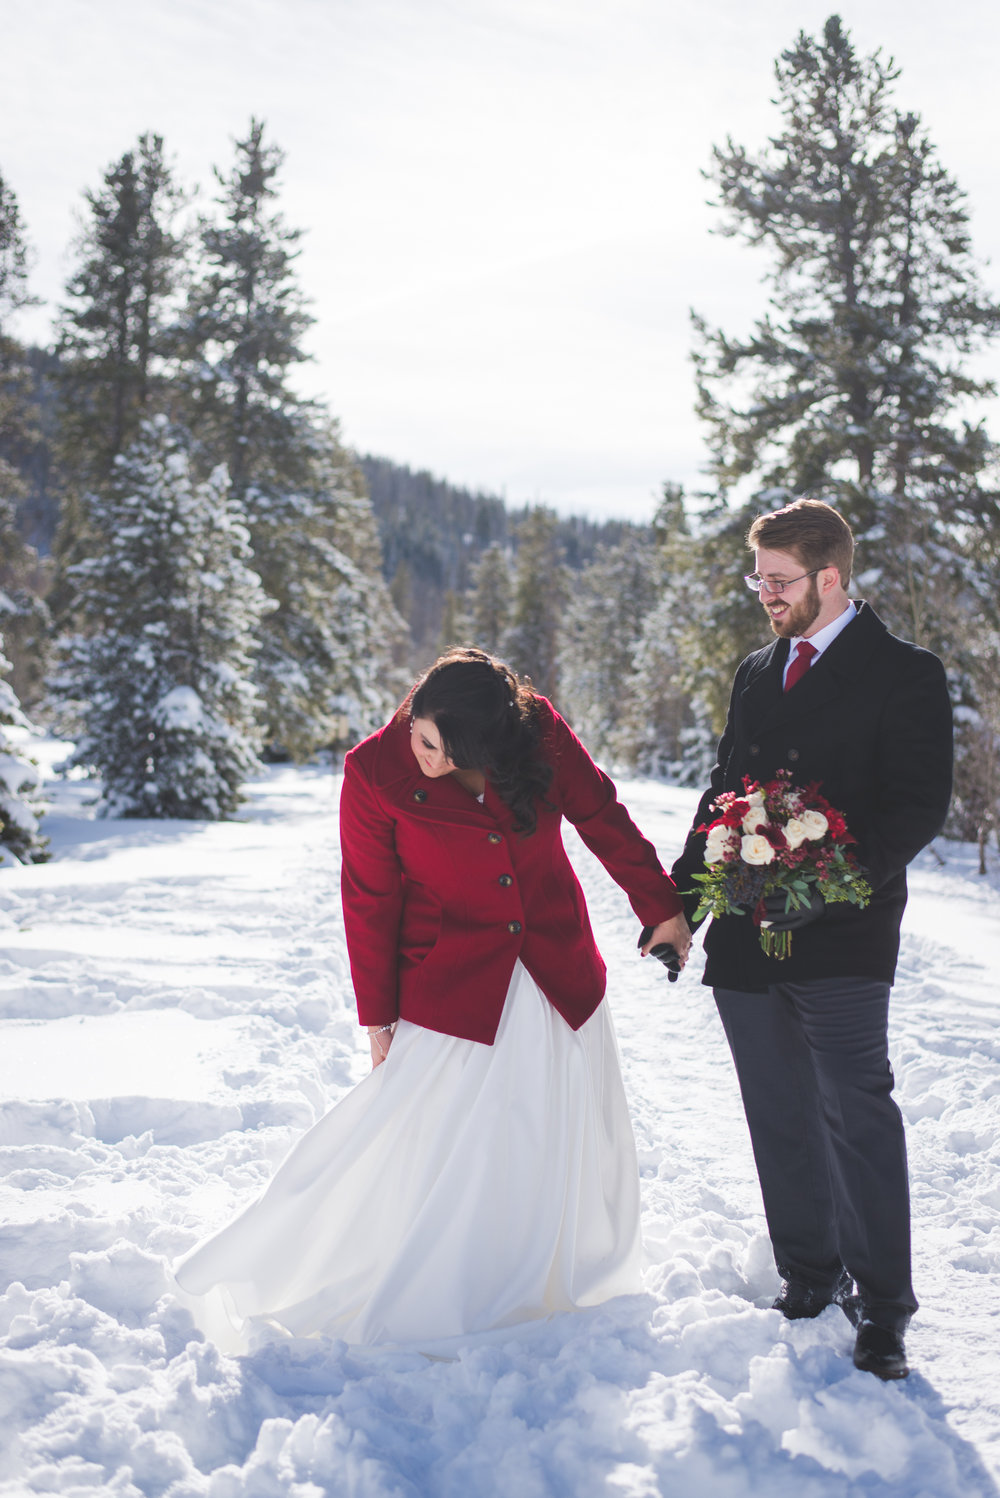 A red coat and red flowers were the perfect touch to this winter elopement wedding in the Colorado mountains.